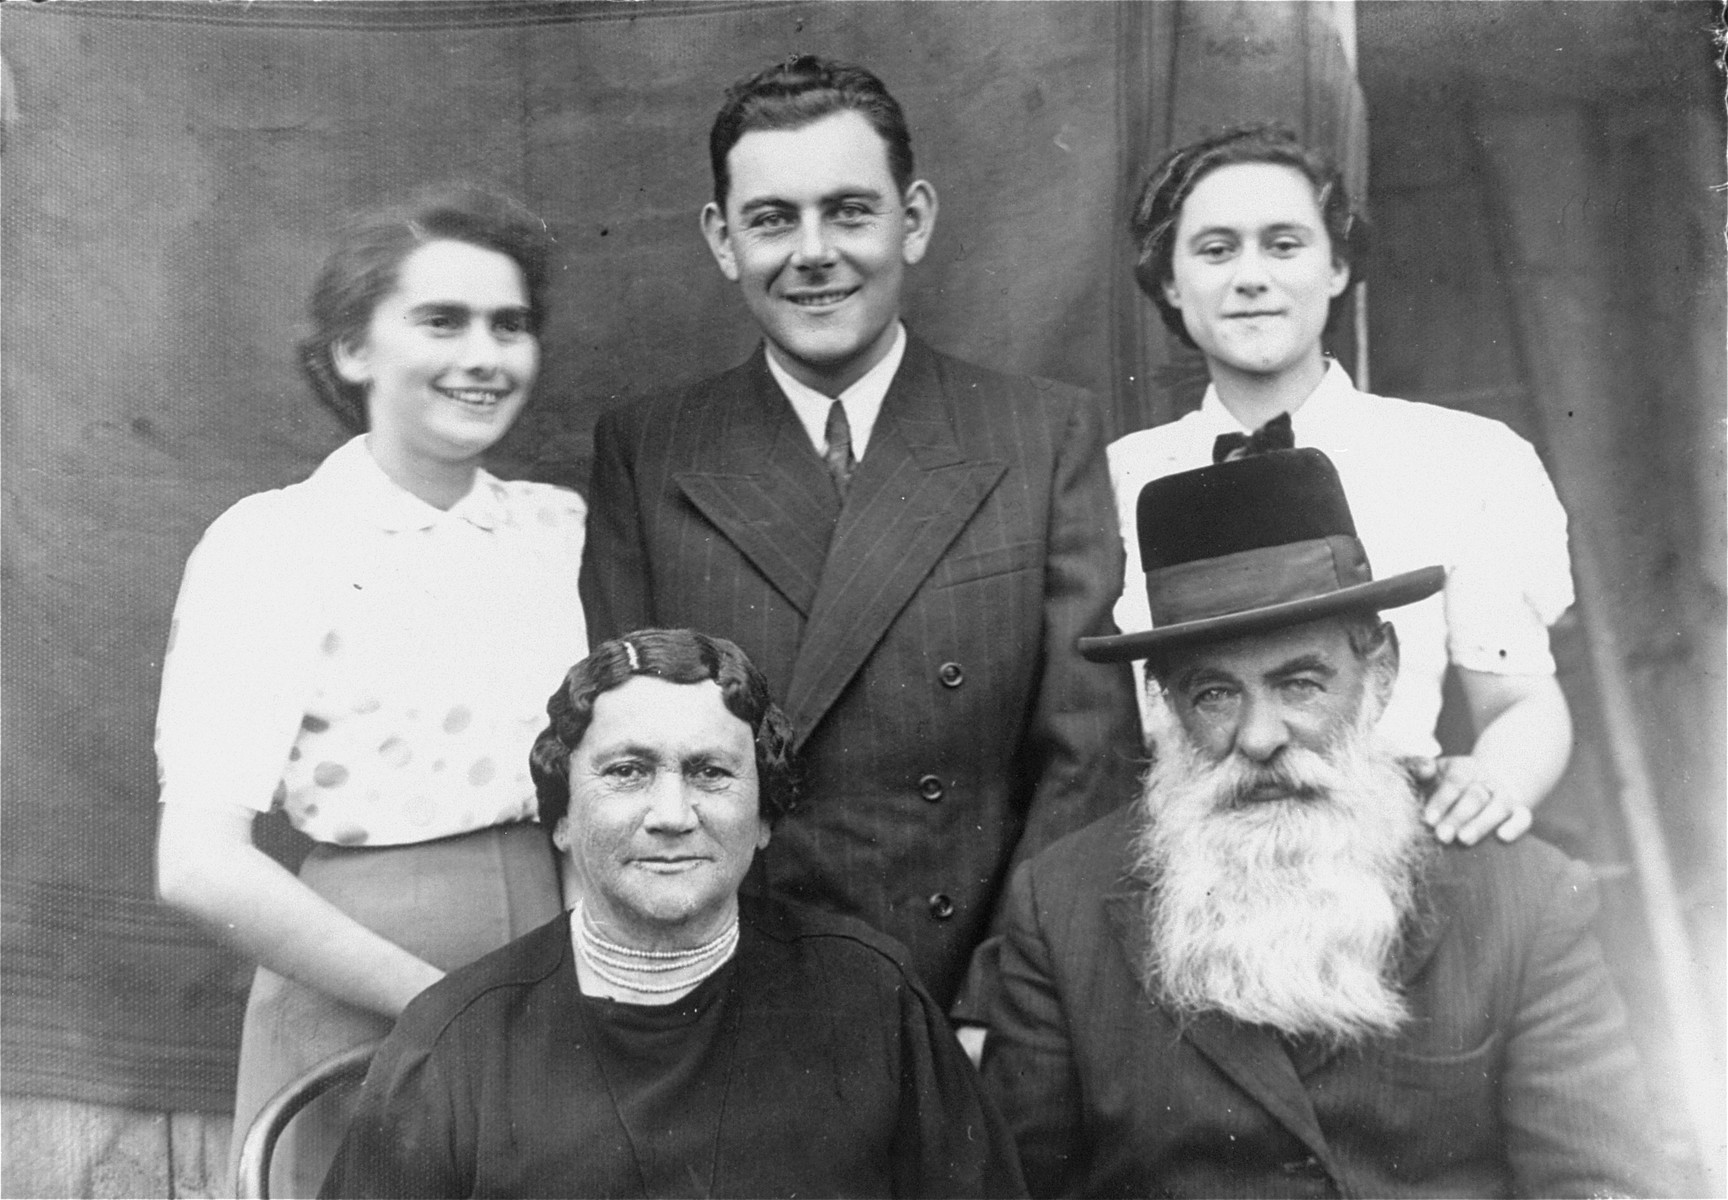 Leidner family portrait taken on the occasion of the engagement of Avrum Leidner to Rechla Saleschütz.  Four weeks later, on the eve of the outbreak of WWII, Avrum left for America.  Pictured in the front row are: Devorah and David Leidner.  In the back row, from left to right are:  Rechla Saleschütz, Avrum Leidner and Manka Leidner.